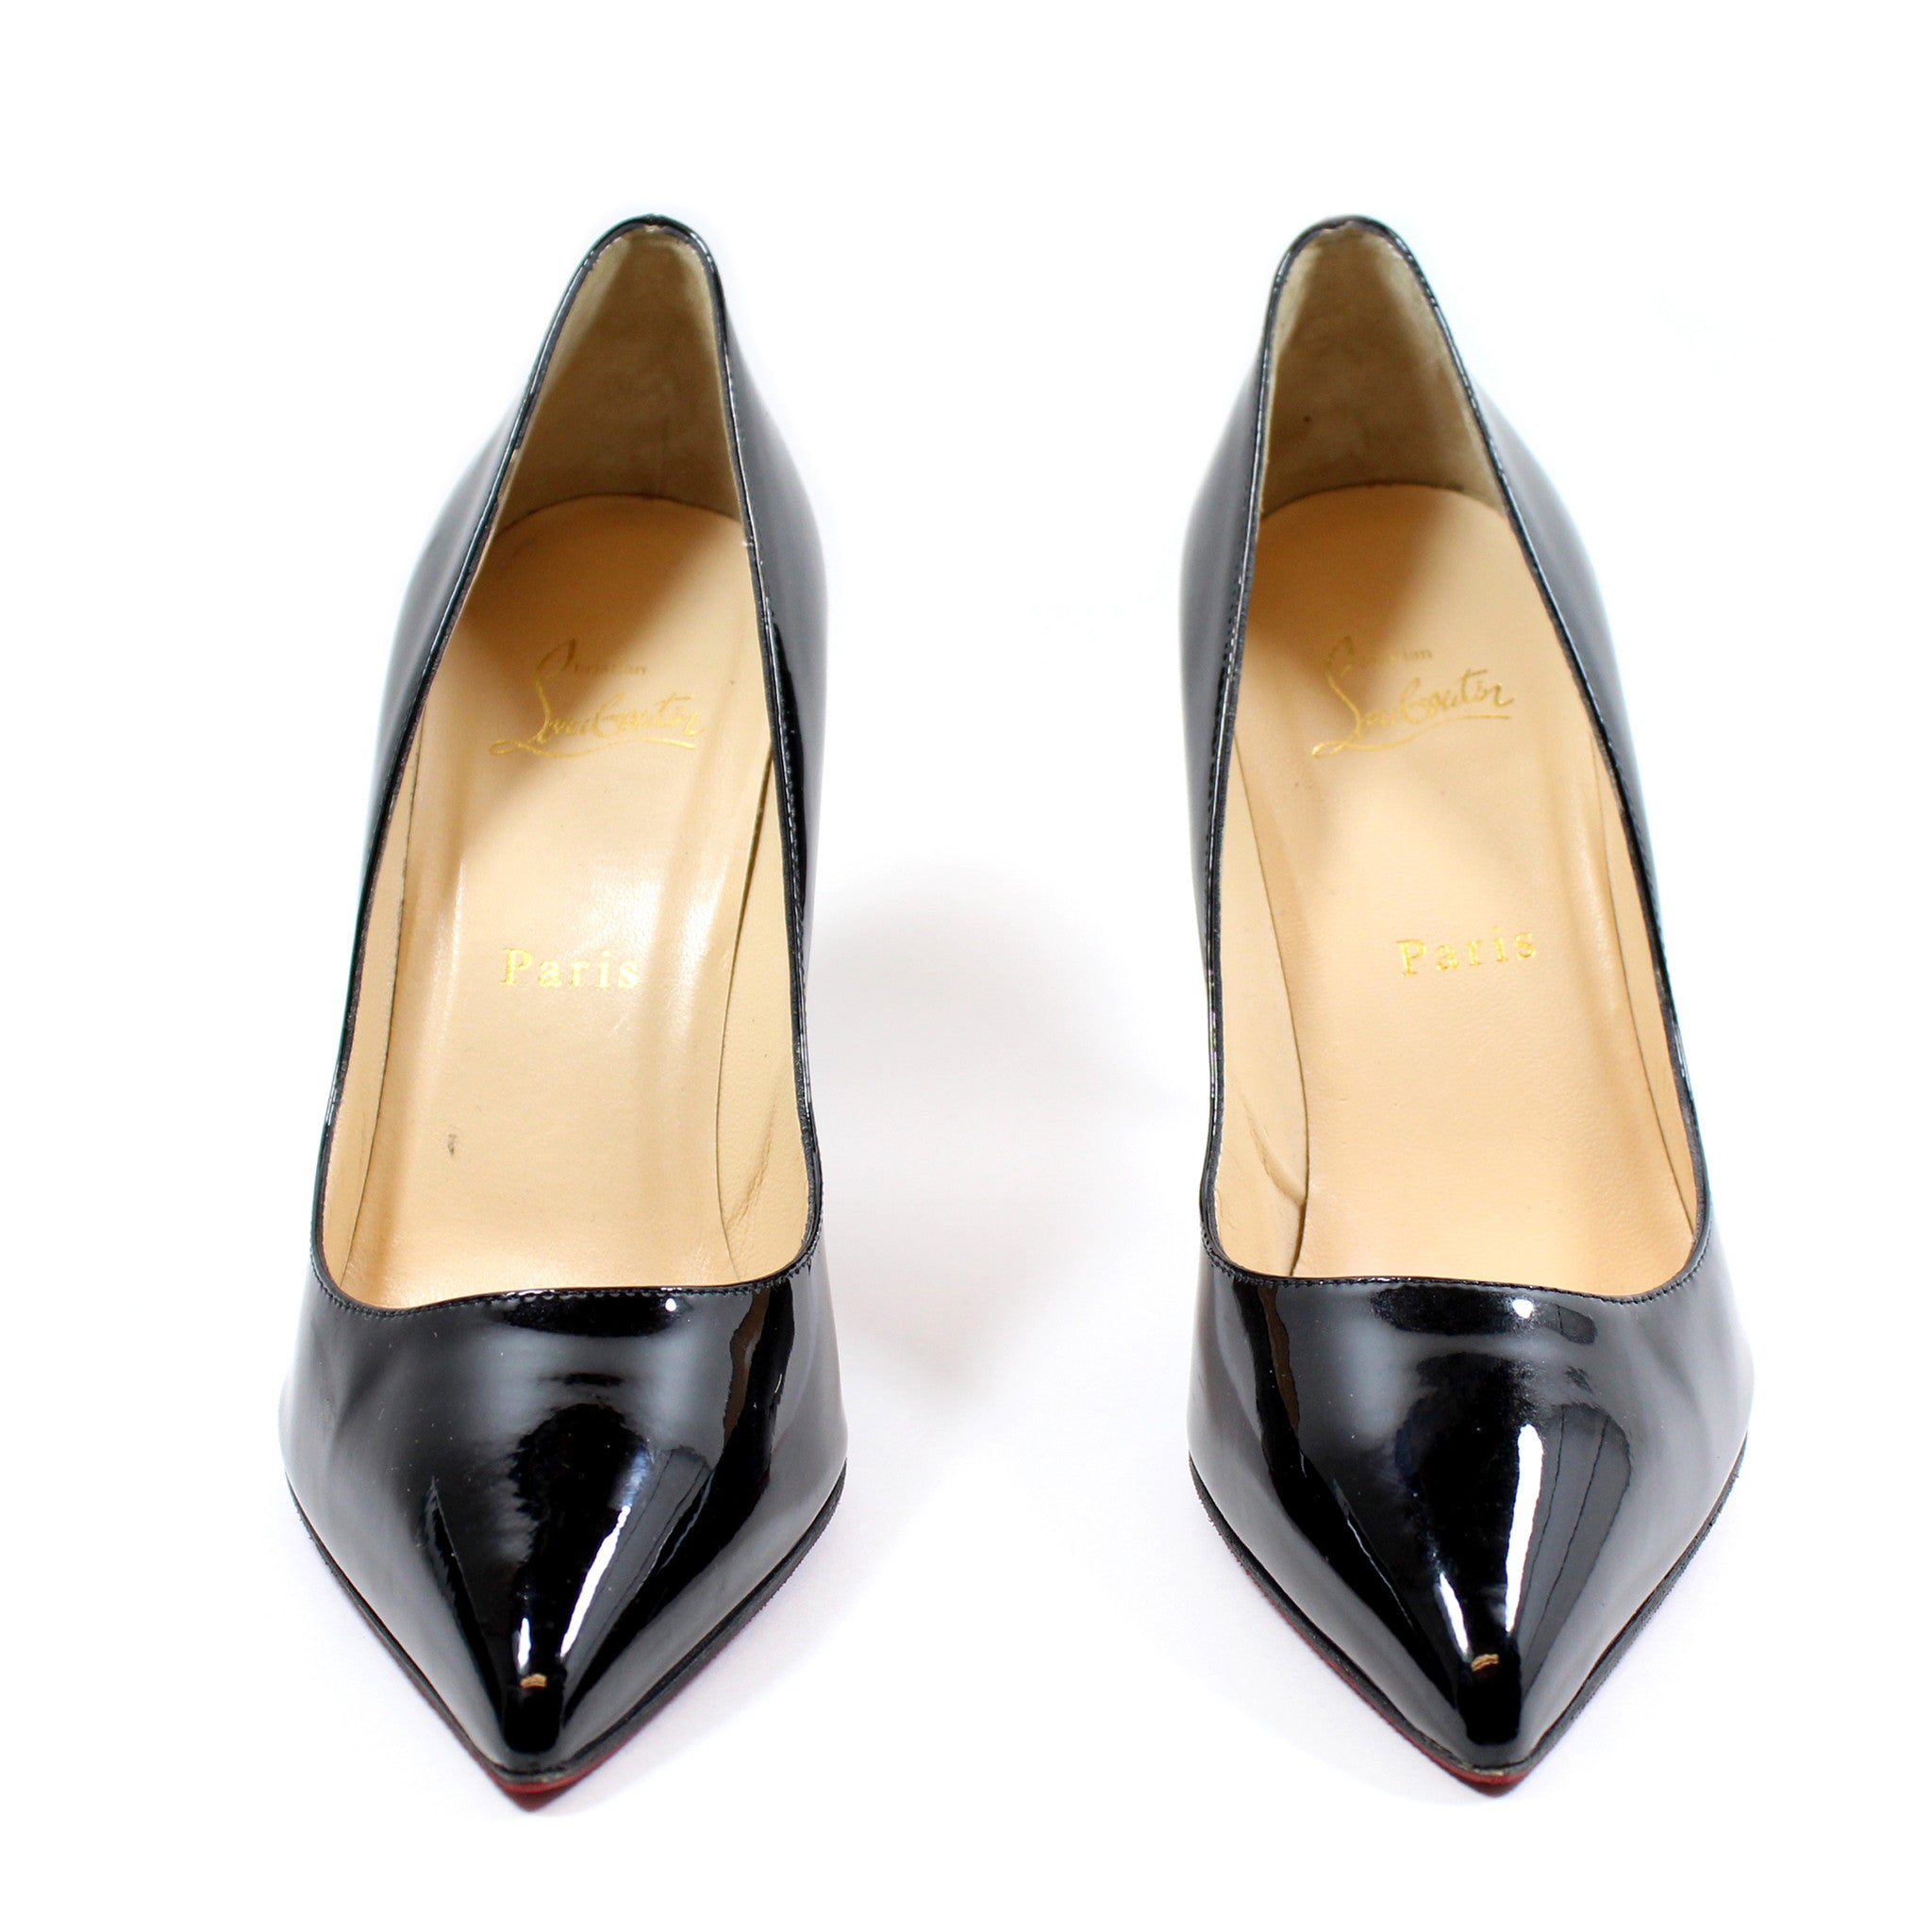 Christian Louboutin 'Pigalle 100' Black Patent Leather Pumps (Size 38.5)